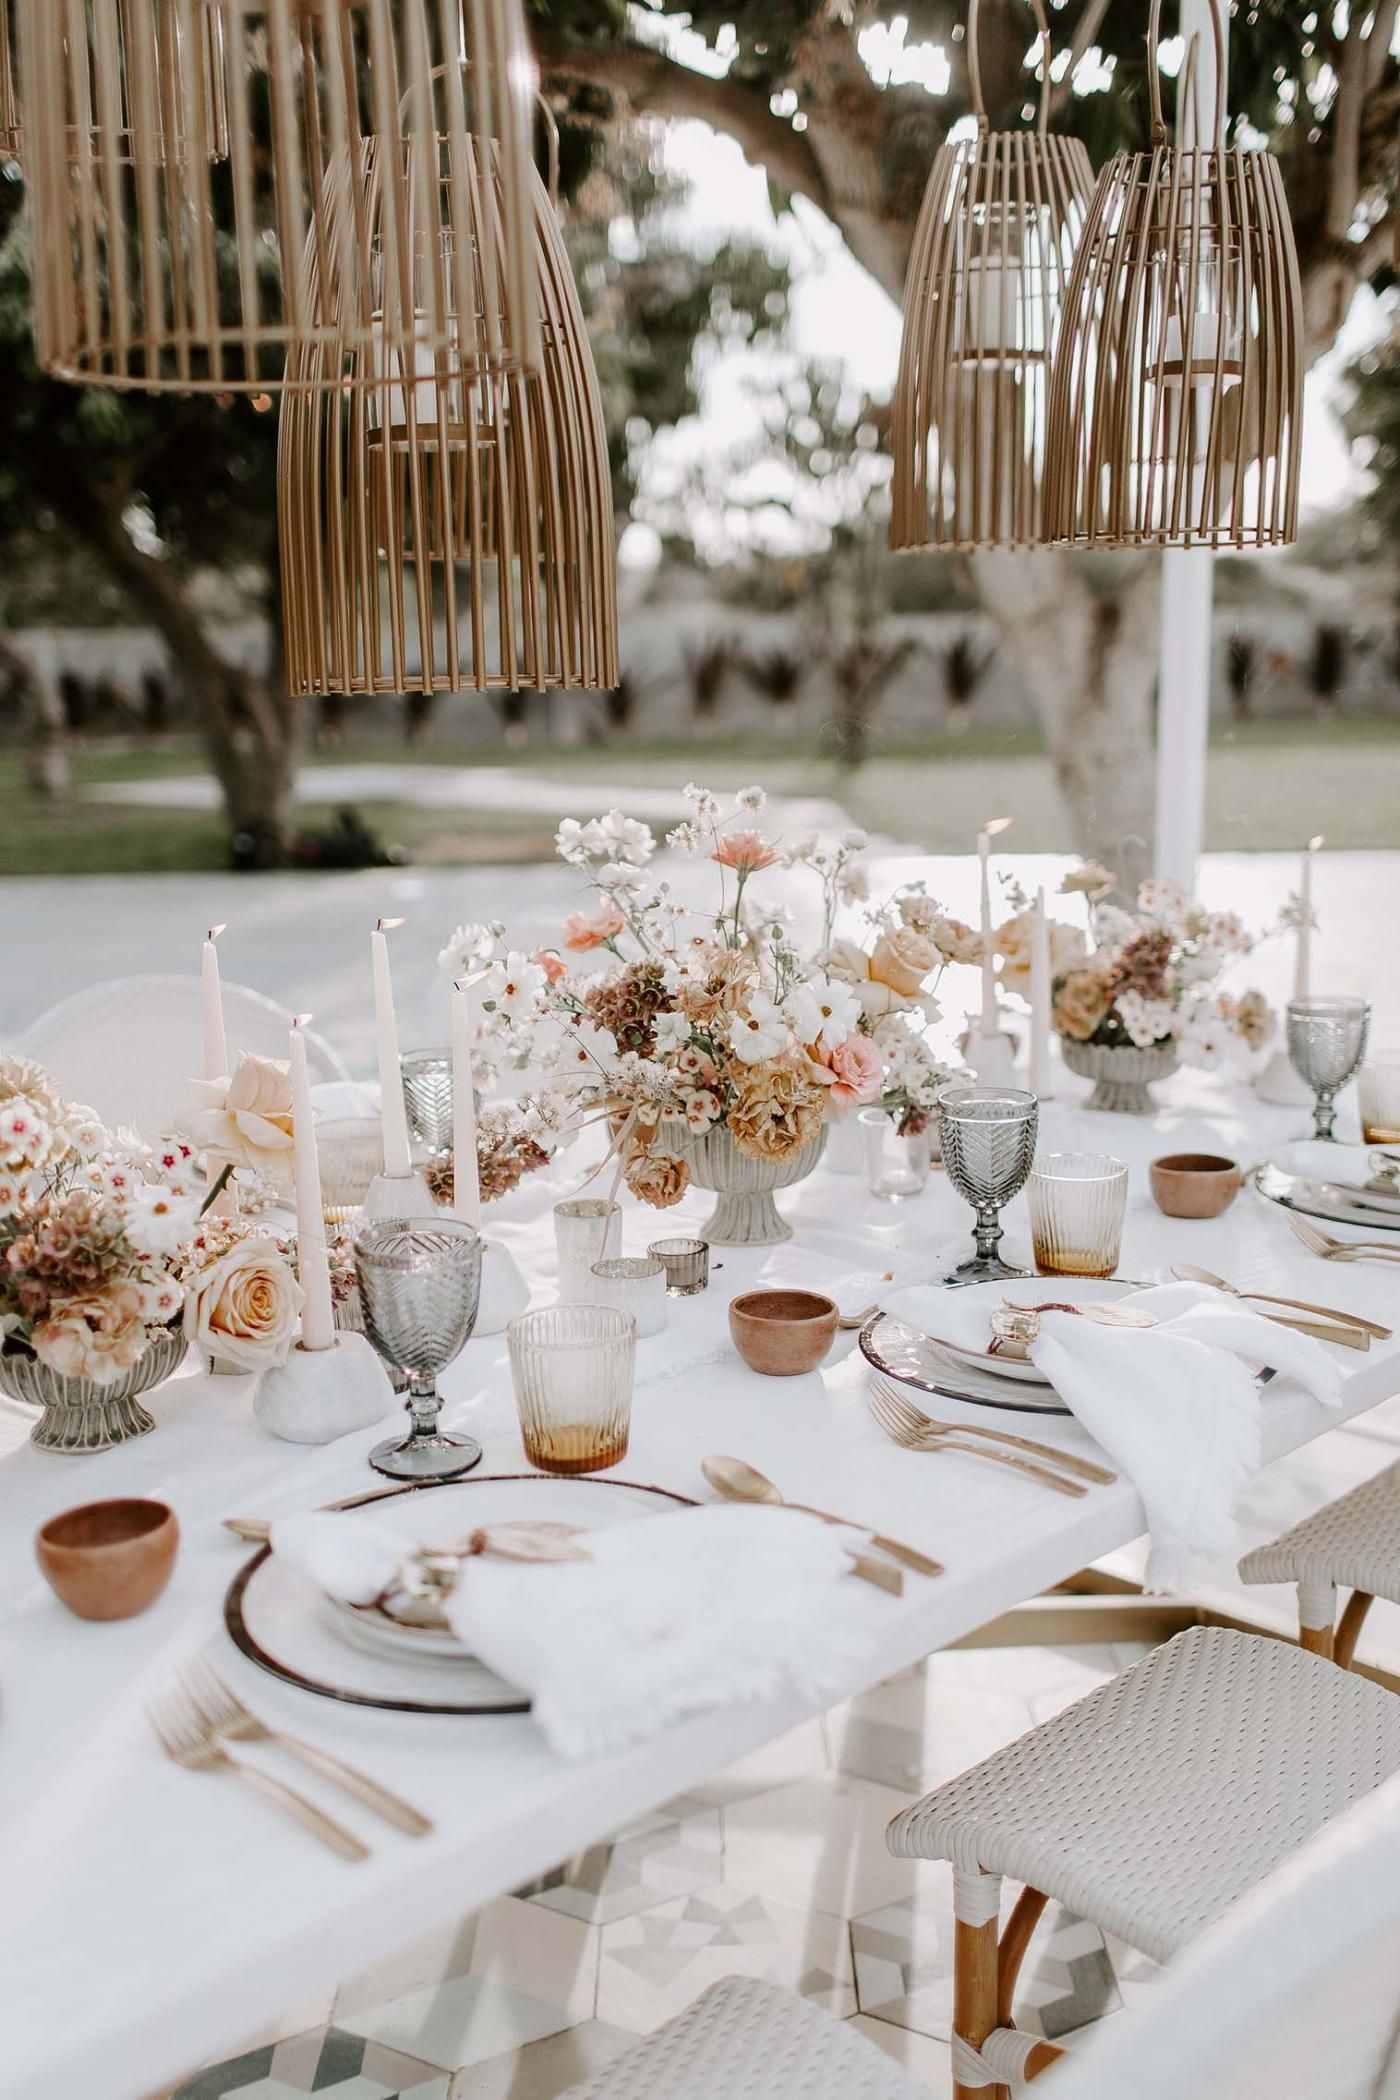 These Photos Are Proof That Dried Florals Are the Next Big Wedding Trend